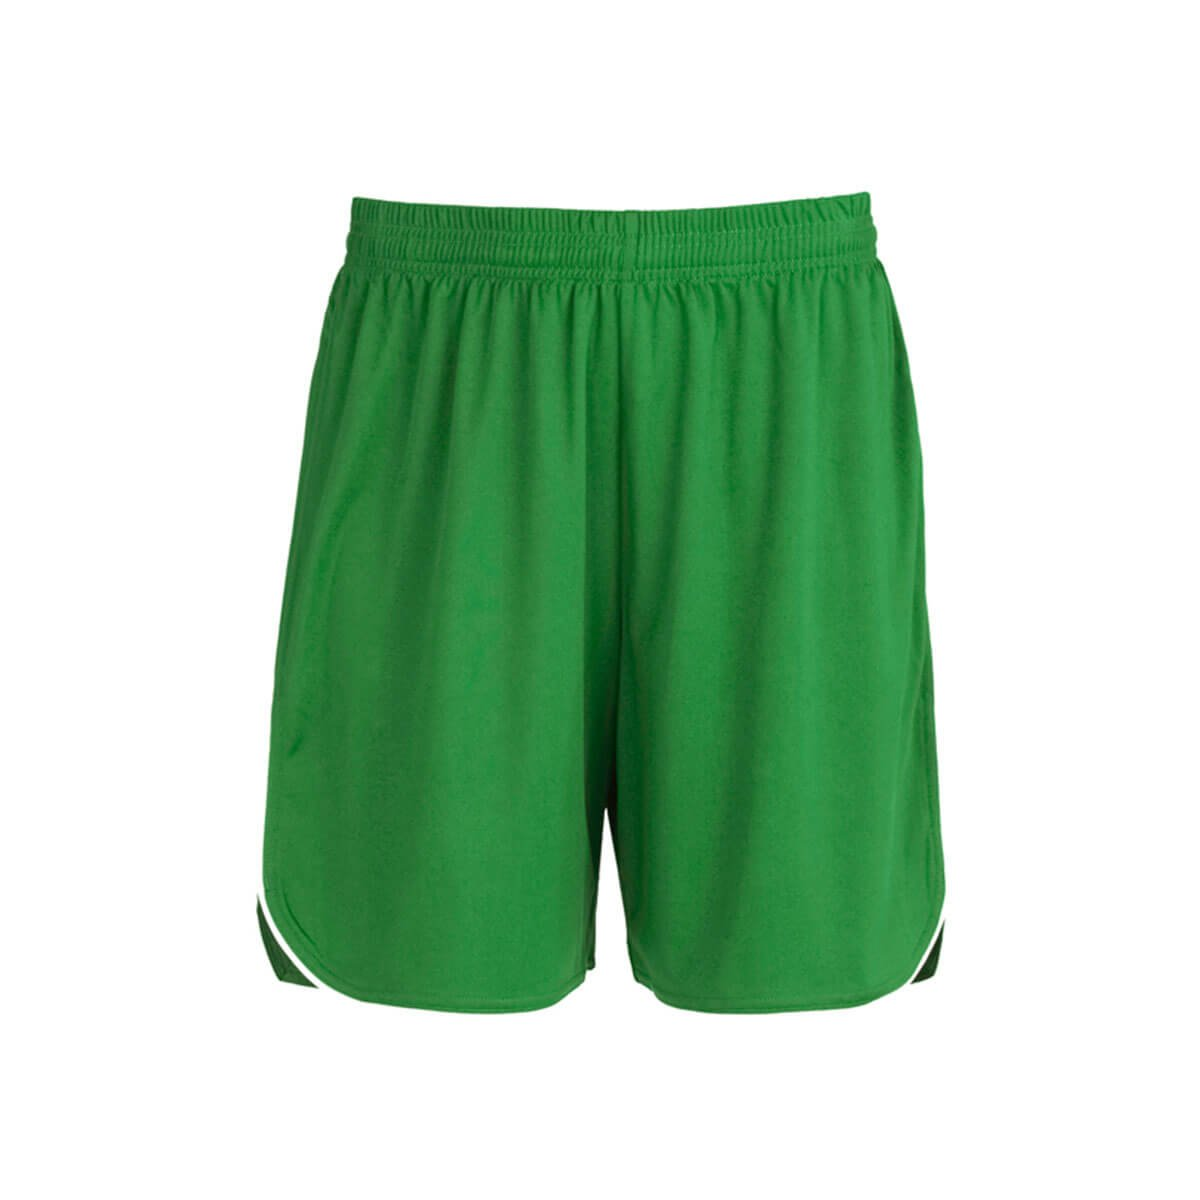 Mens Sonic Shorts-Emerald / White